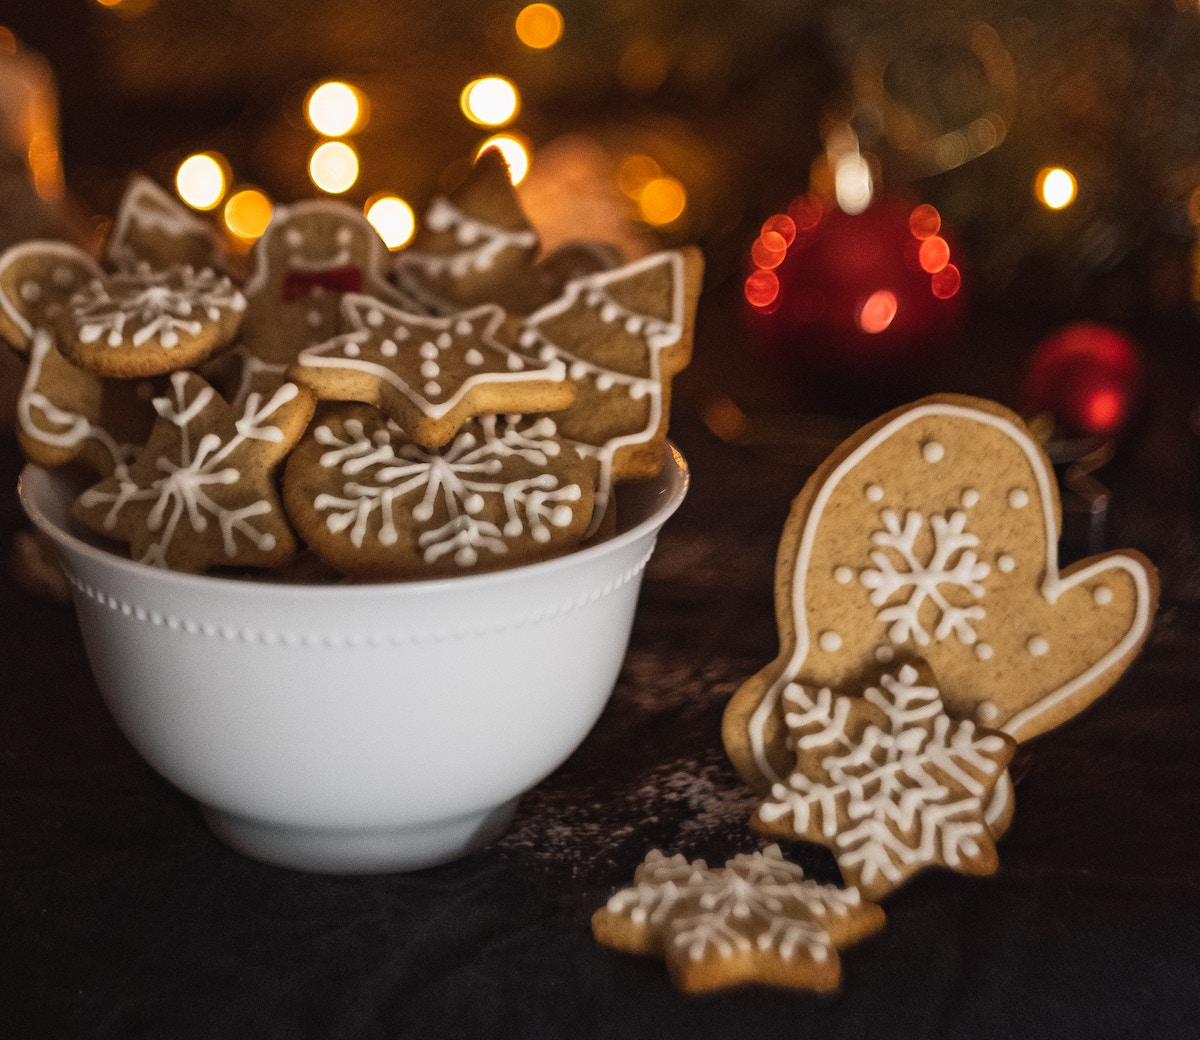 Gingerbread cookies in bowl with fire and lights in back